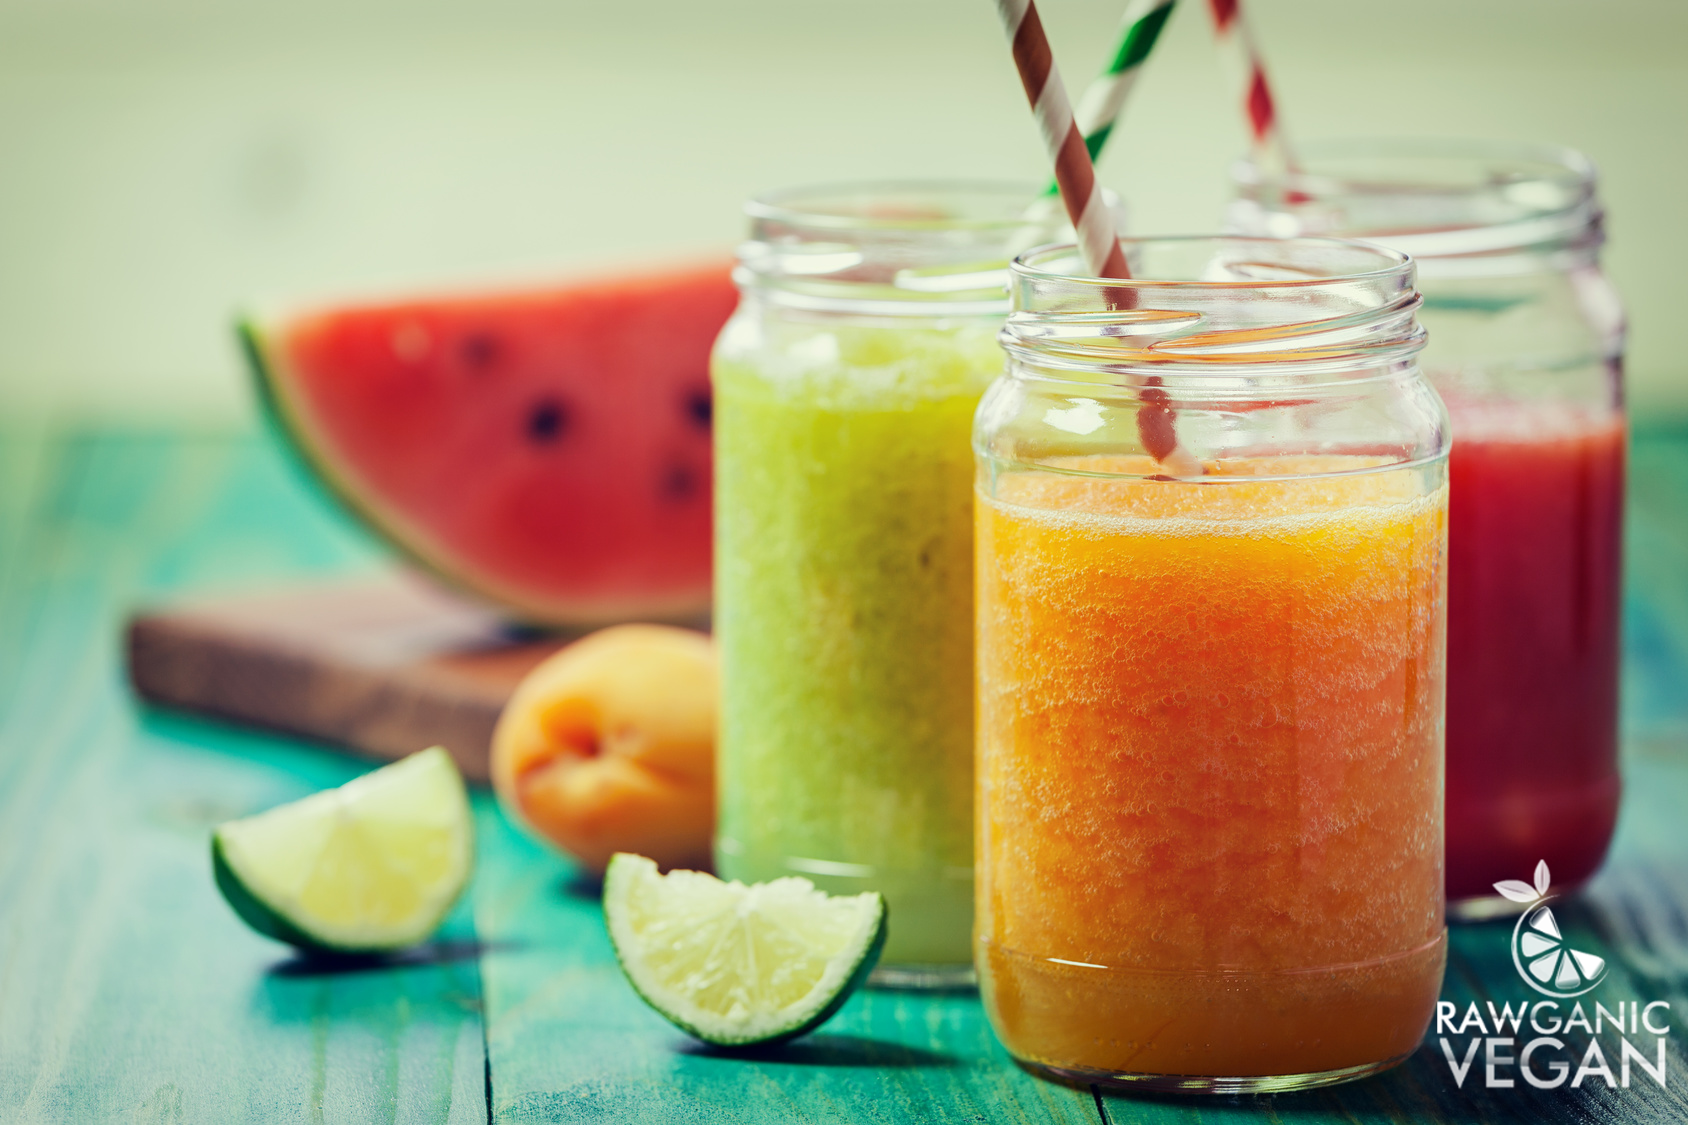 3 Summer Slushies and Why We Crave Sweets